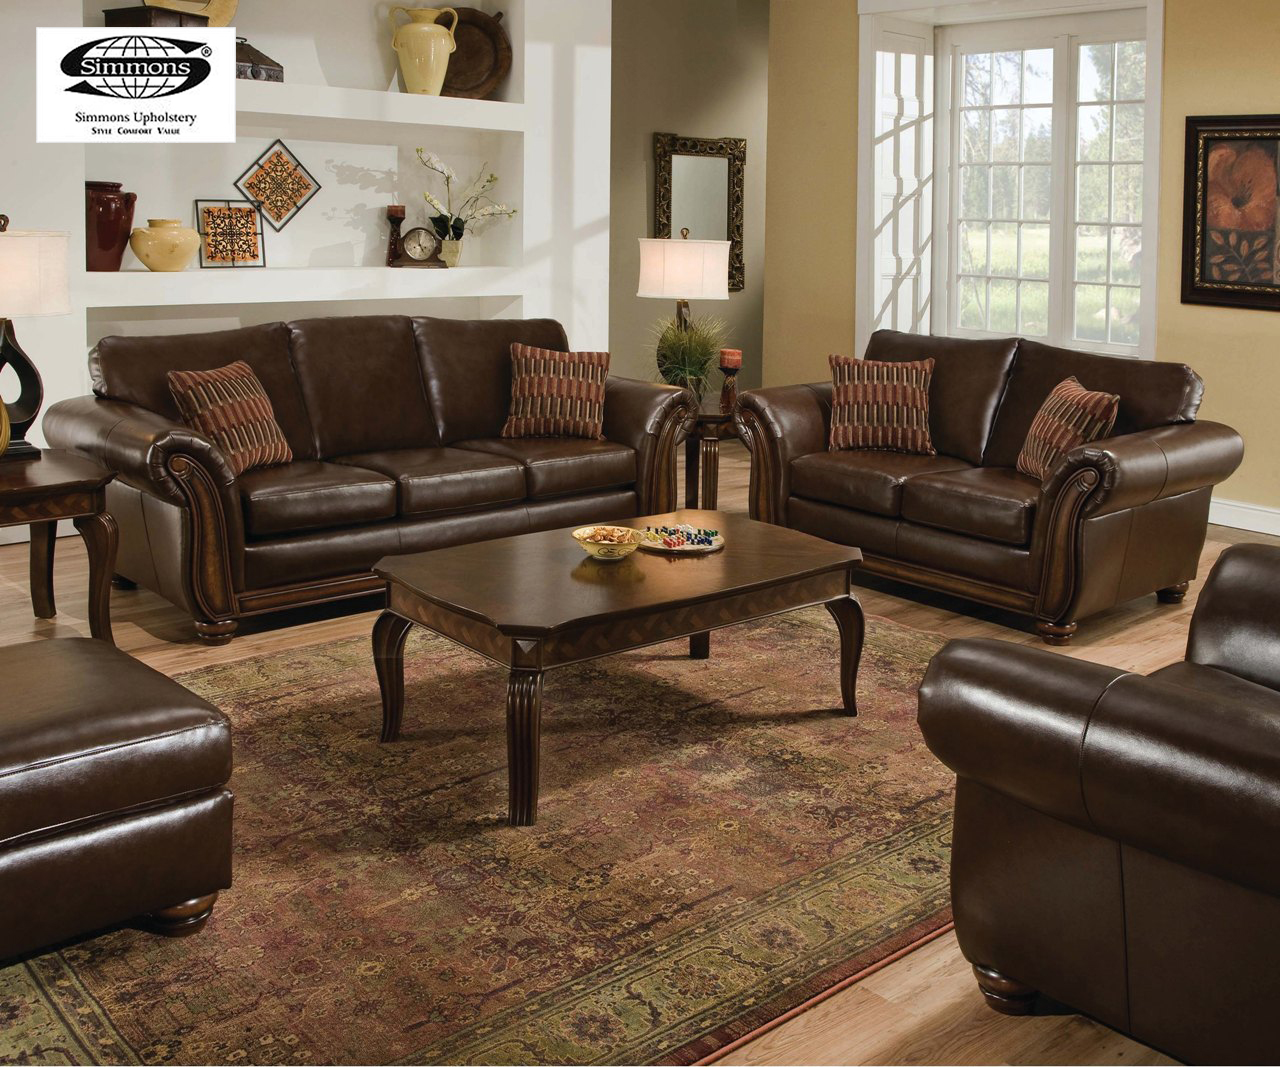 Santa monica traditional bonded leather living room for Classic living room furniture